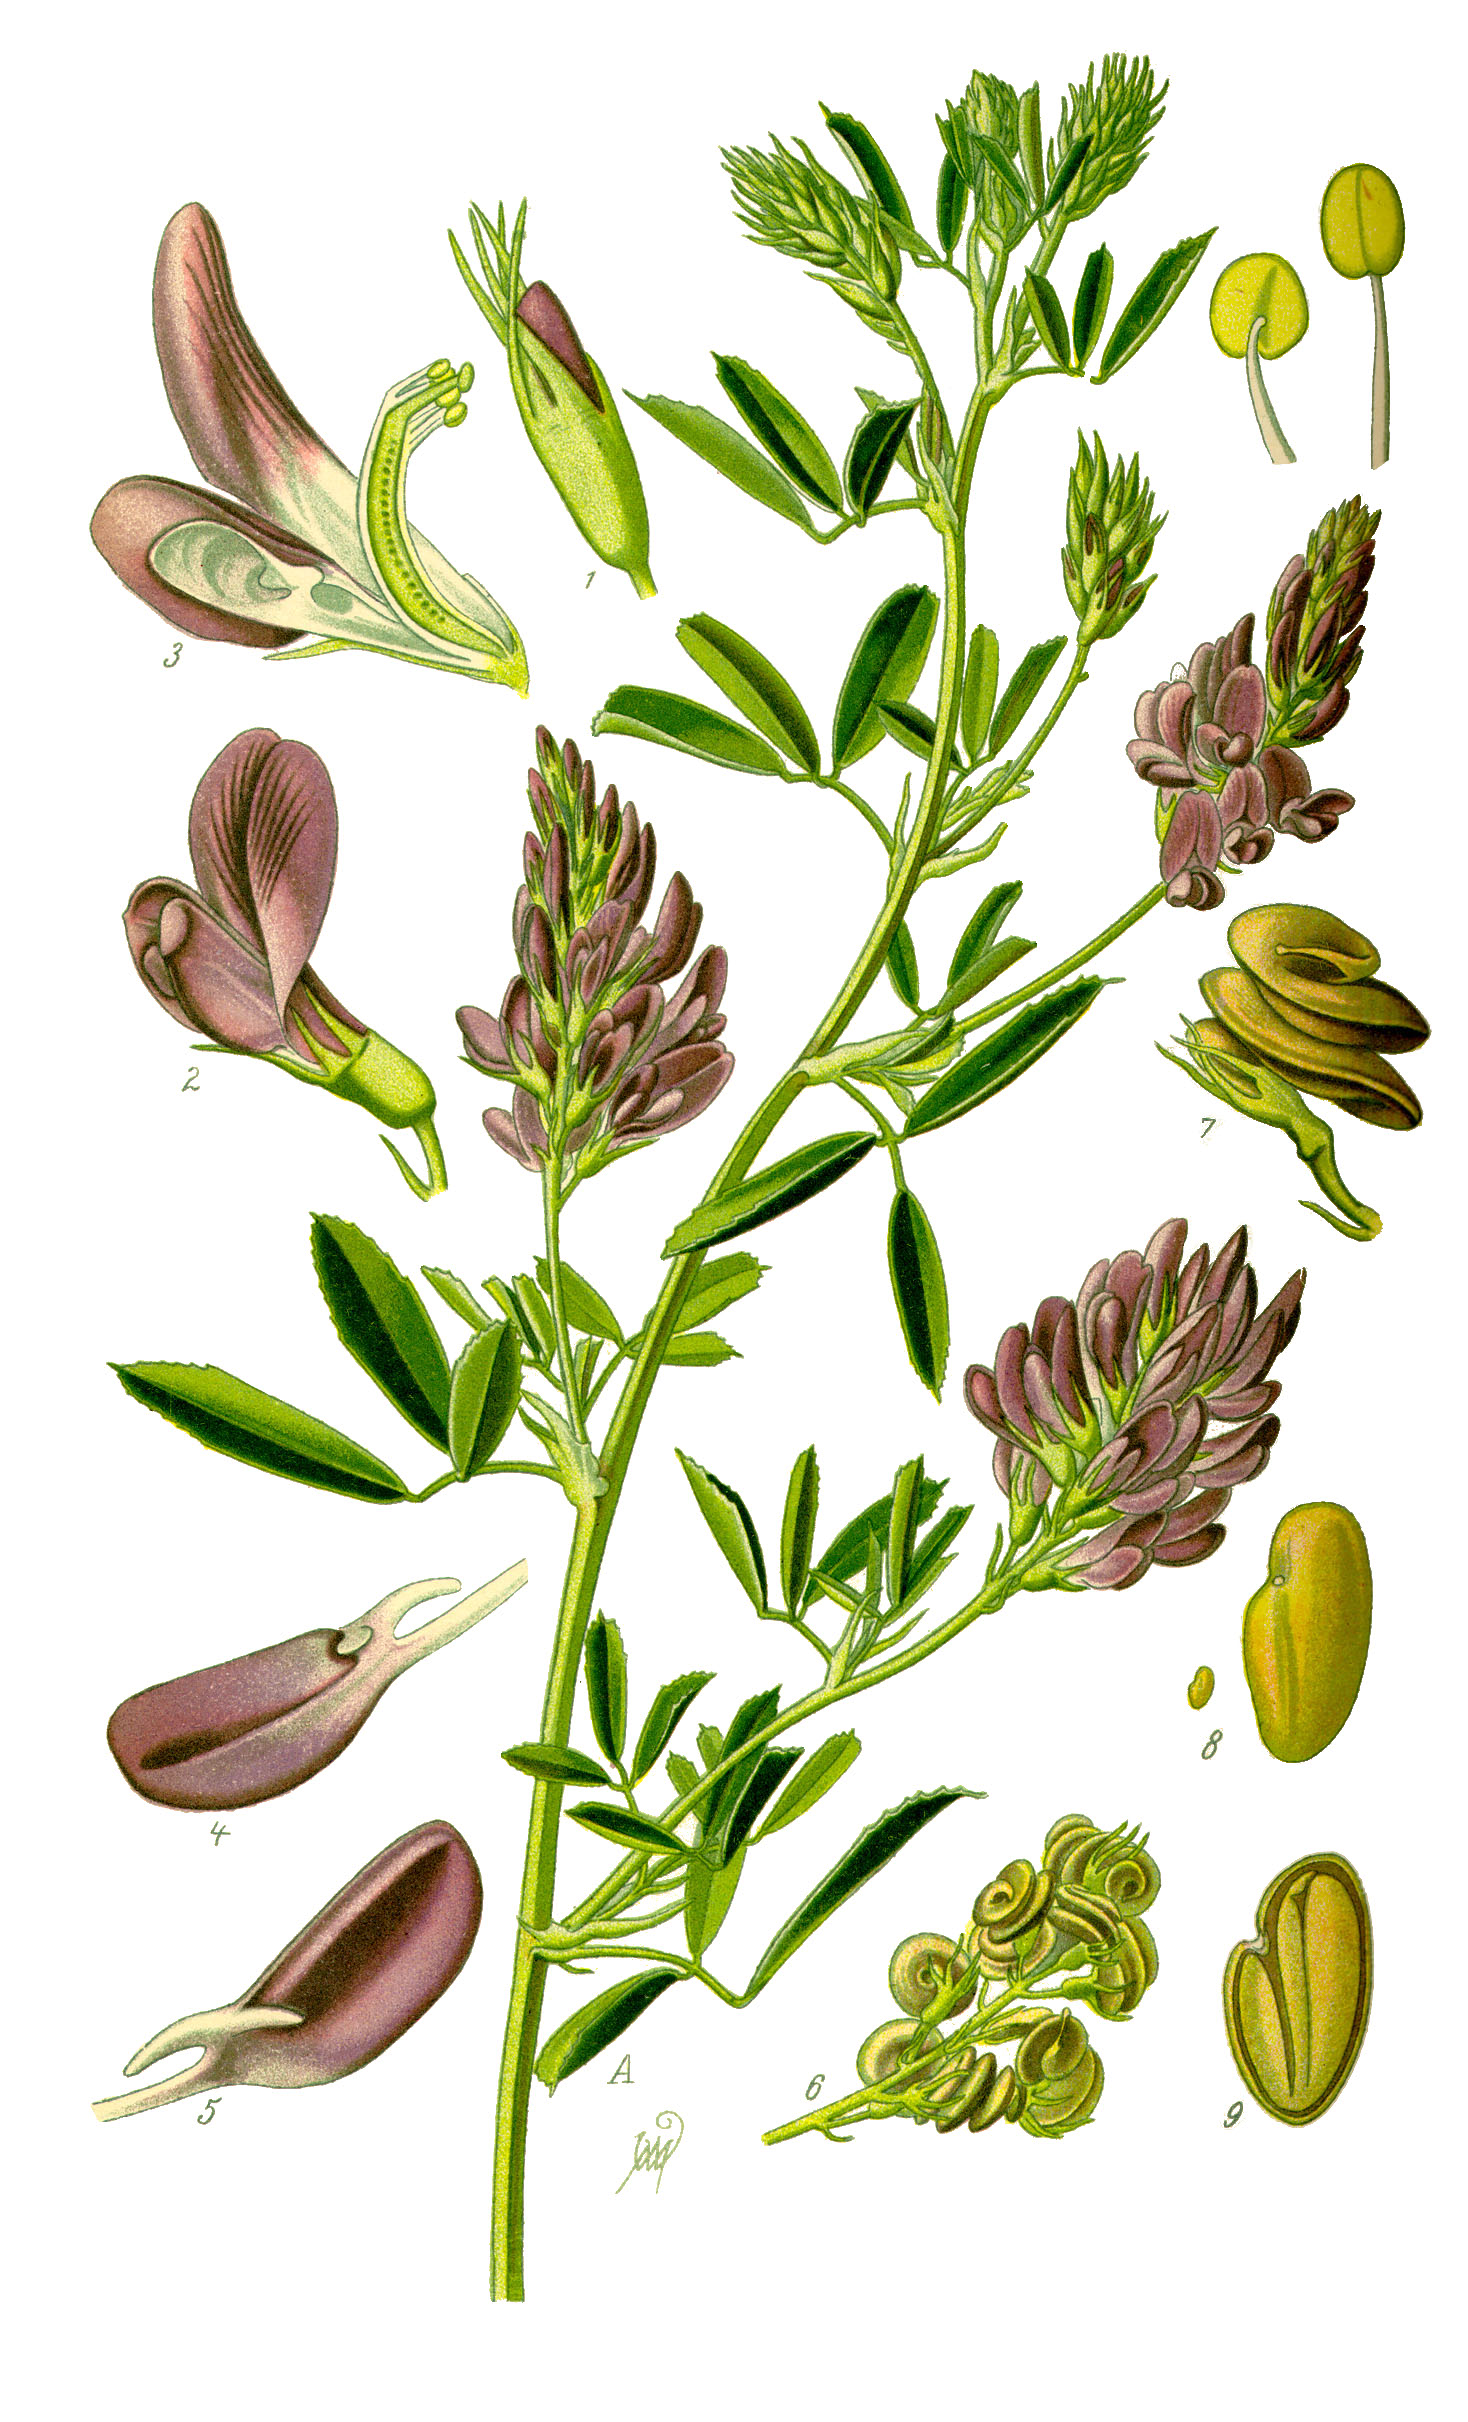 Depiction of Medicago sativa